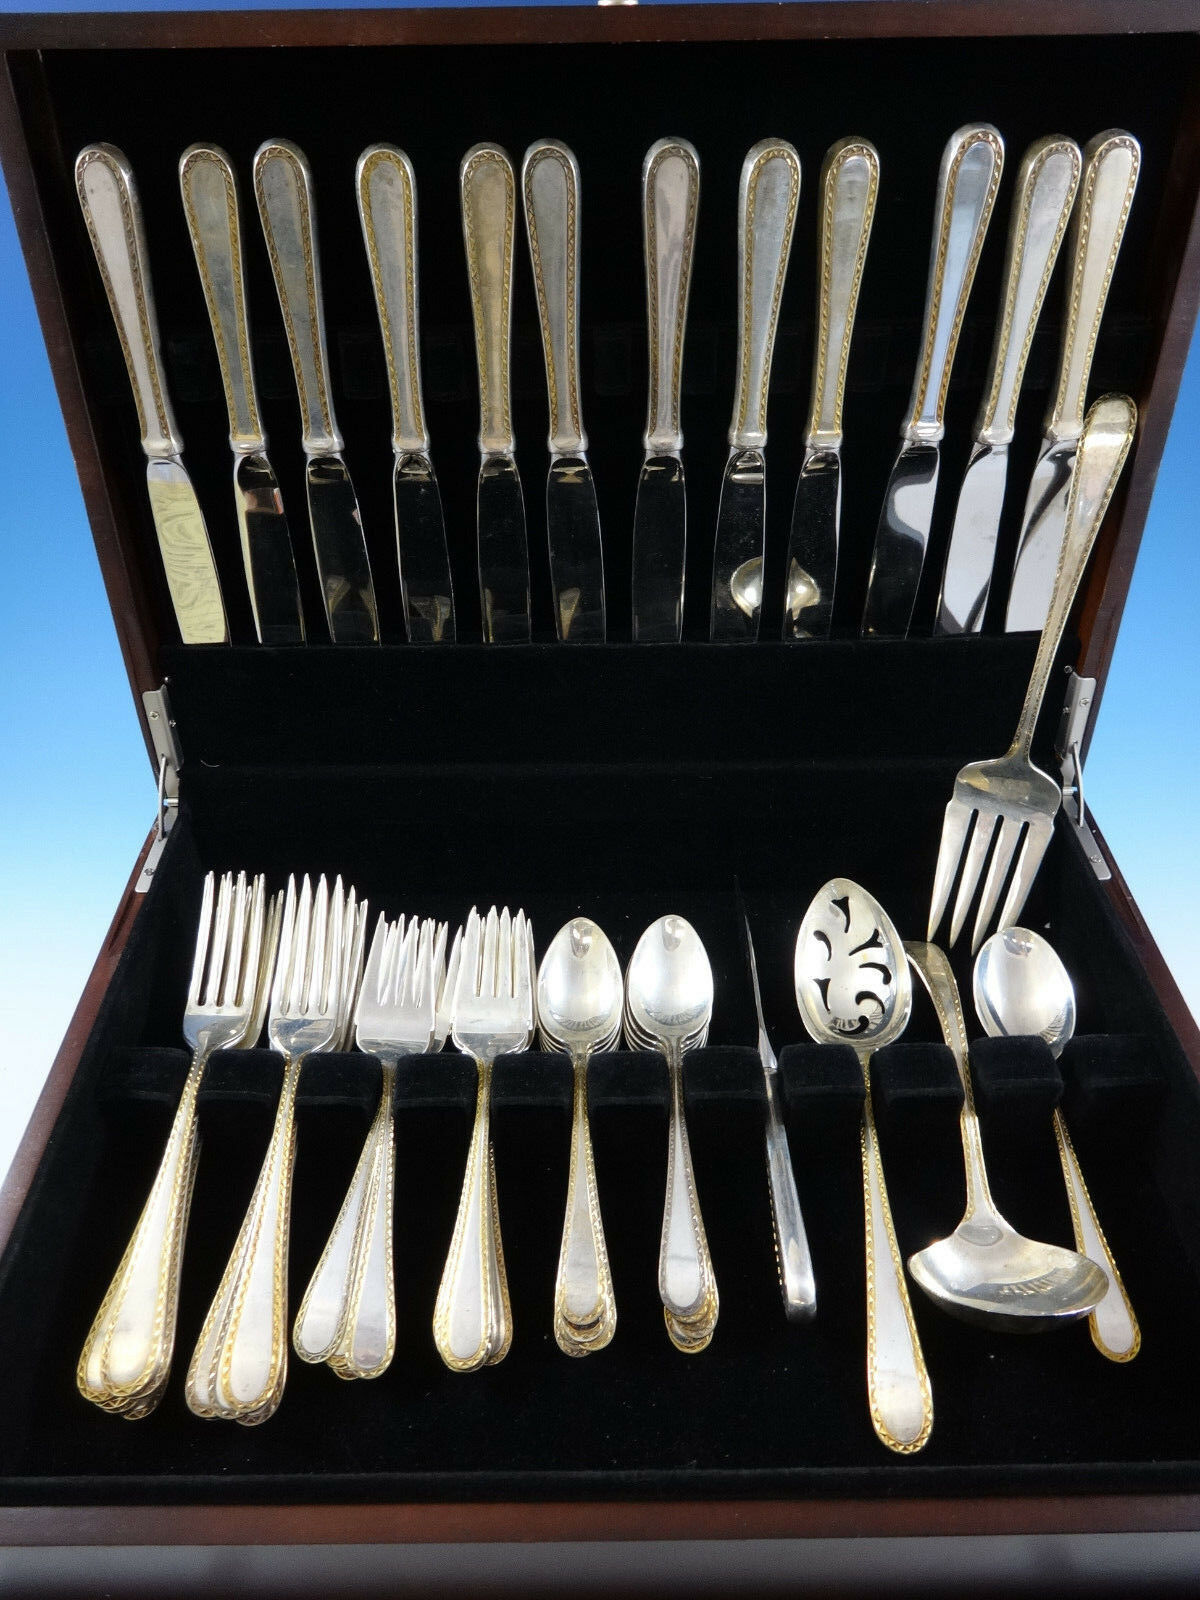 Primary image for Golden Winslow by Kirk Sterling Silver 12 Flatware Service Set 53 Pcs